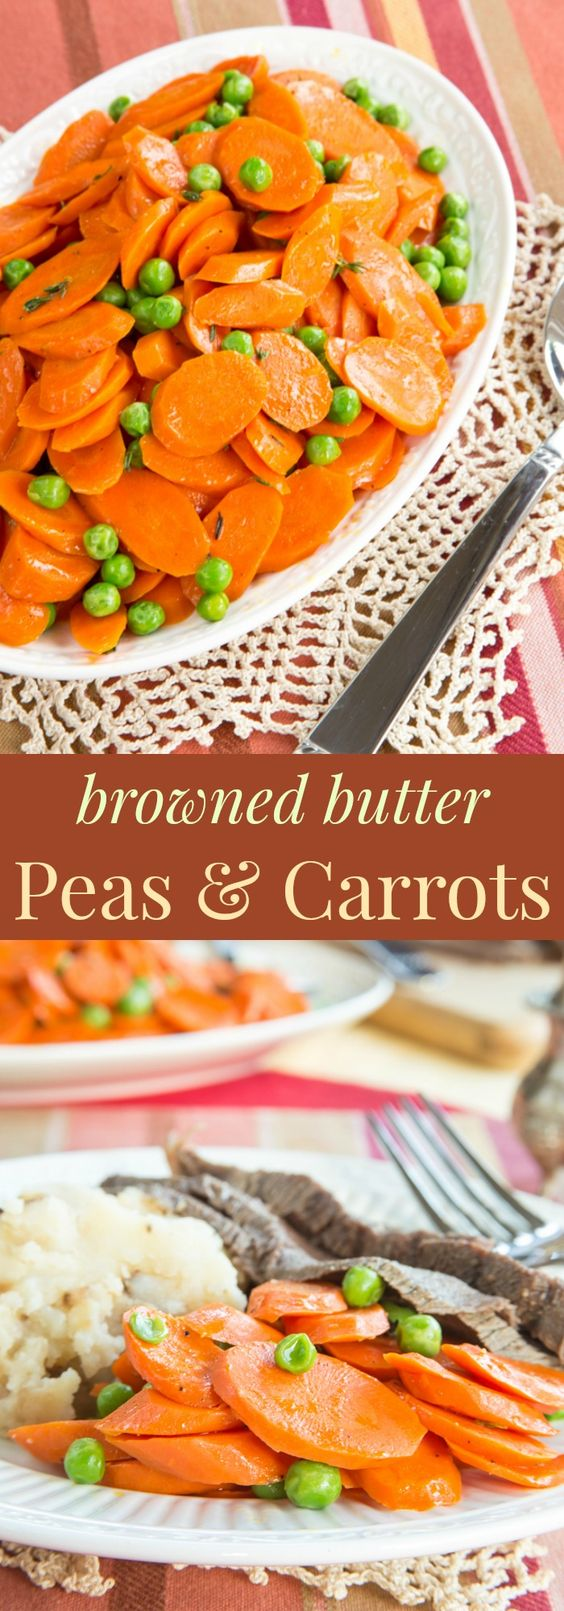 Browned Butter Peas and Carrots - a simple way to add incredible flavor to this basic vegetable side dish recipe without a lot of fuss. Quick, easy, healthy, and flavorful! | cupcakesandkalechips.com | gluten free, vegetarian